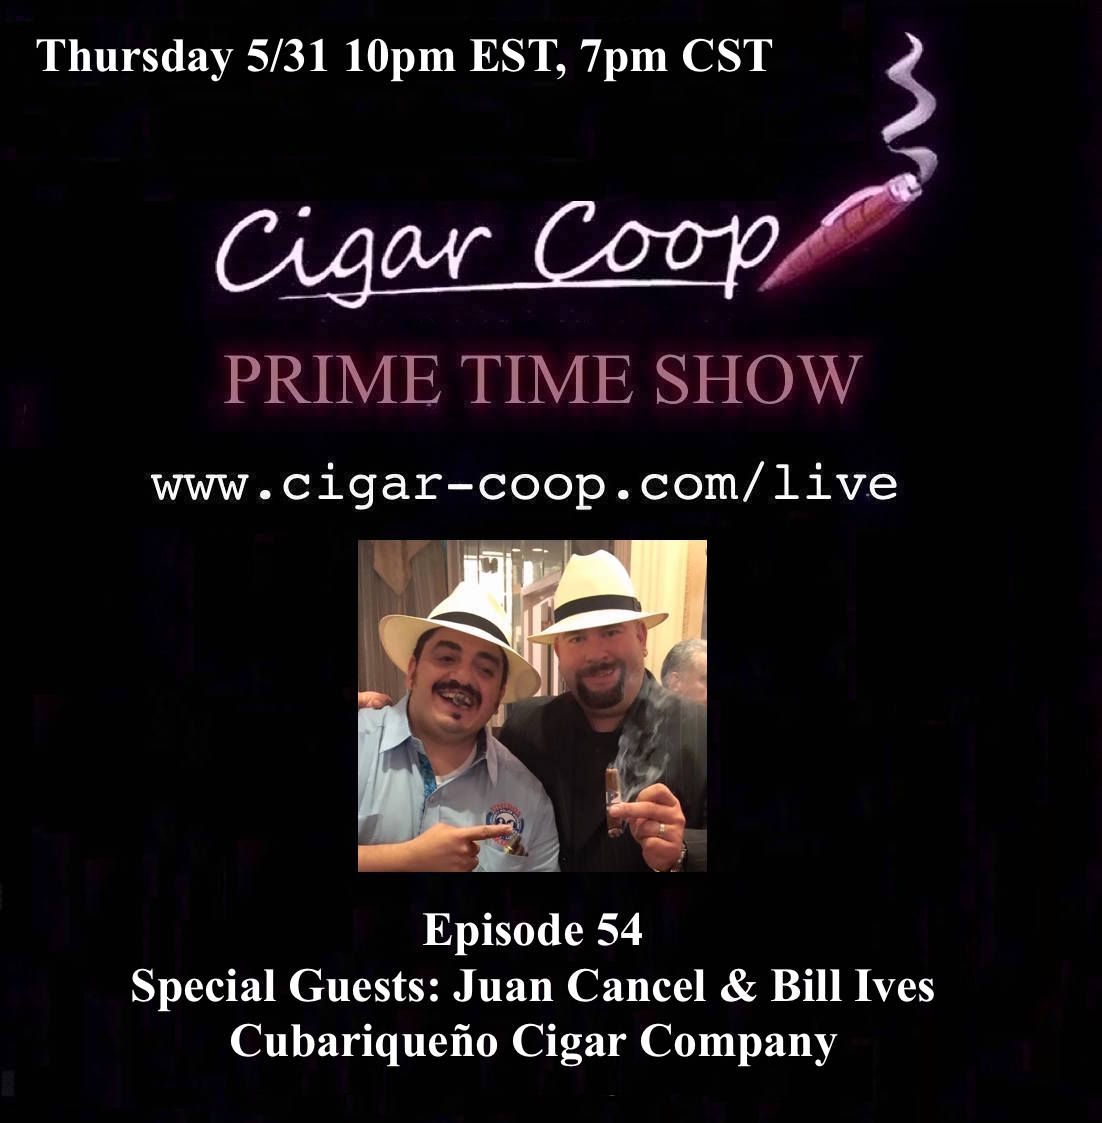 Announcement: Prime Time Show Episode 54 – Juan Cancel & Bill Ives, Cubariqueño Cigar Co. 10pm EST, 7pm PST